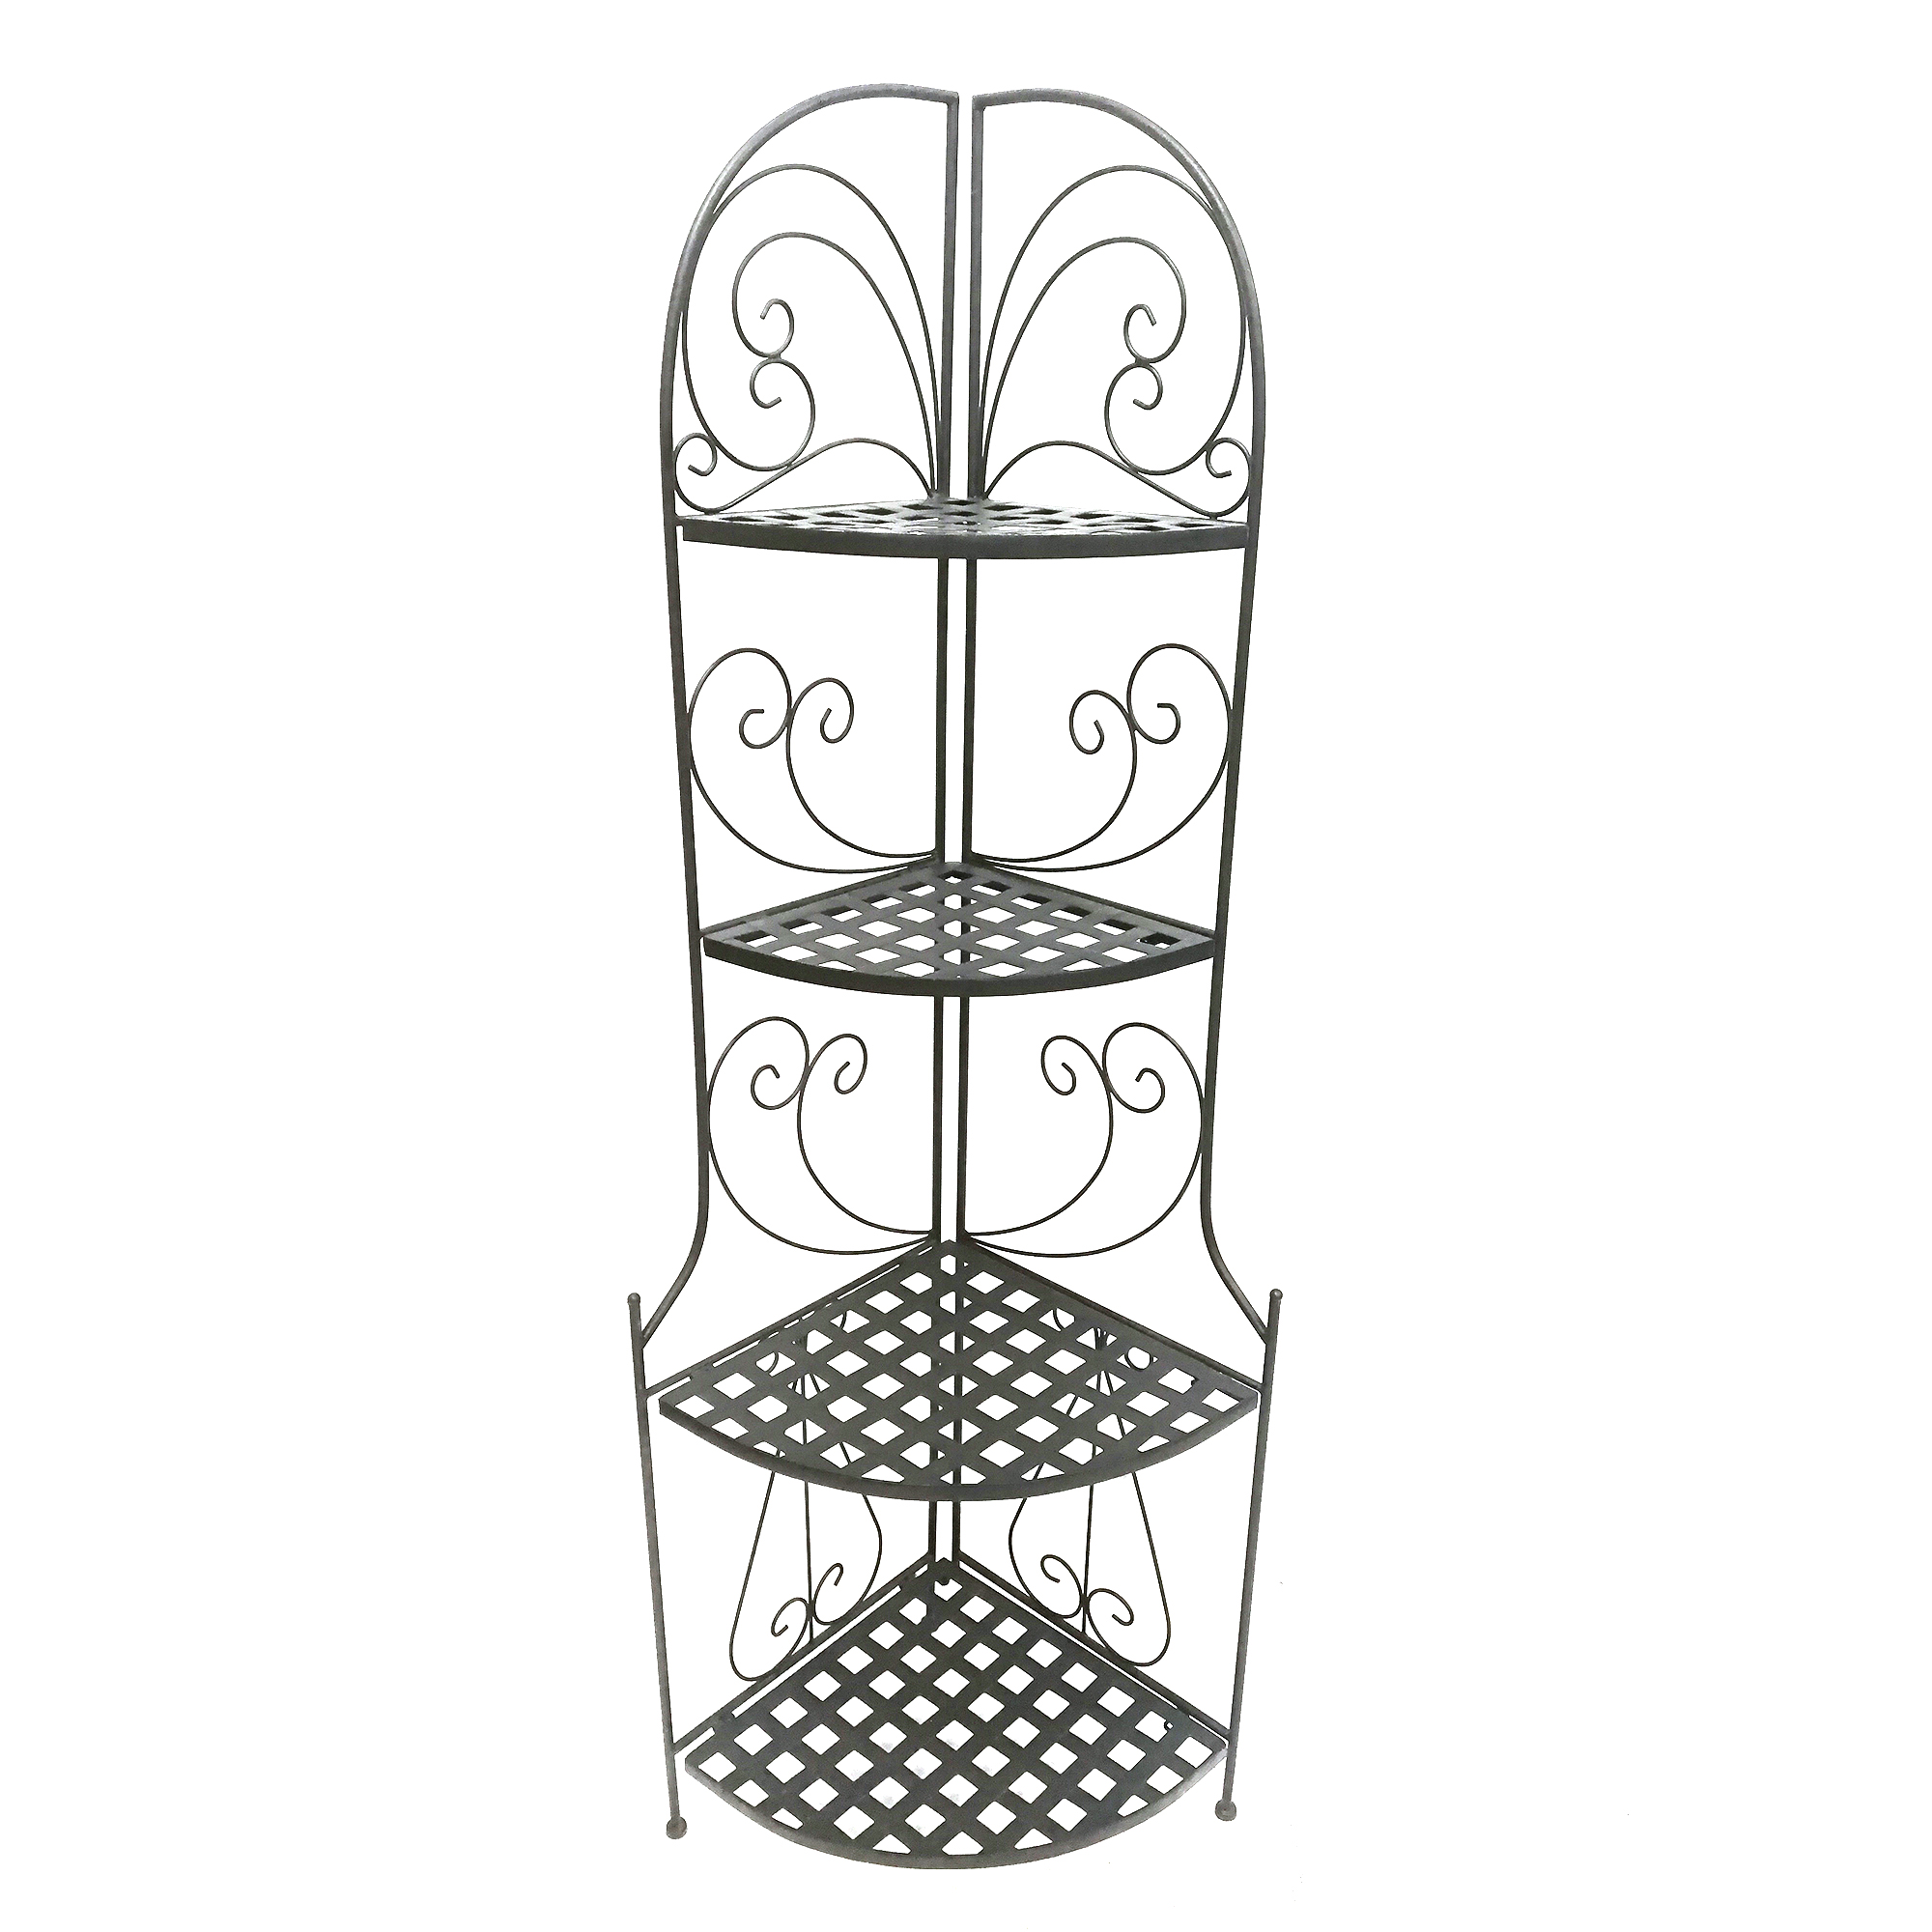 Foldable Black Metal Corner Bakers Rack with Grid Pattern Shelves